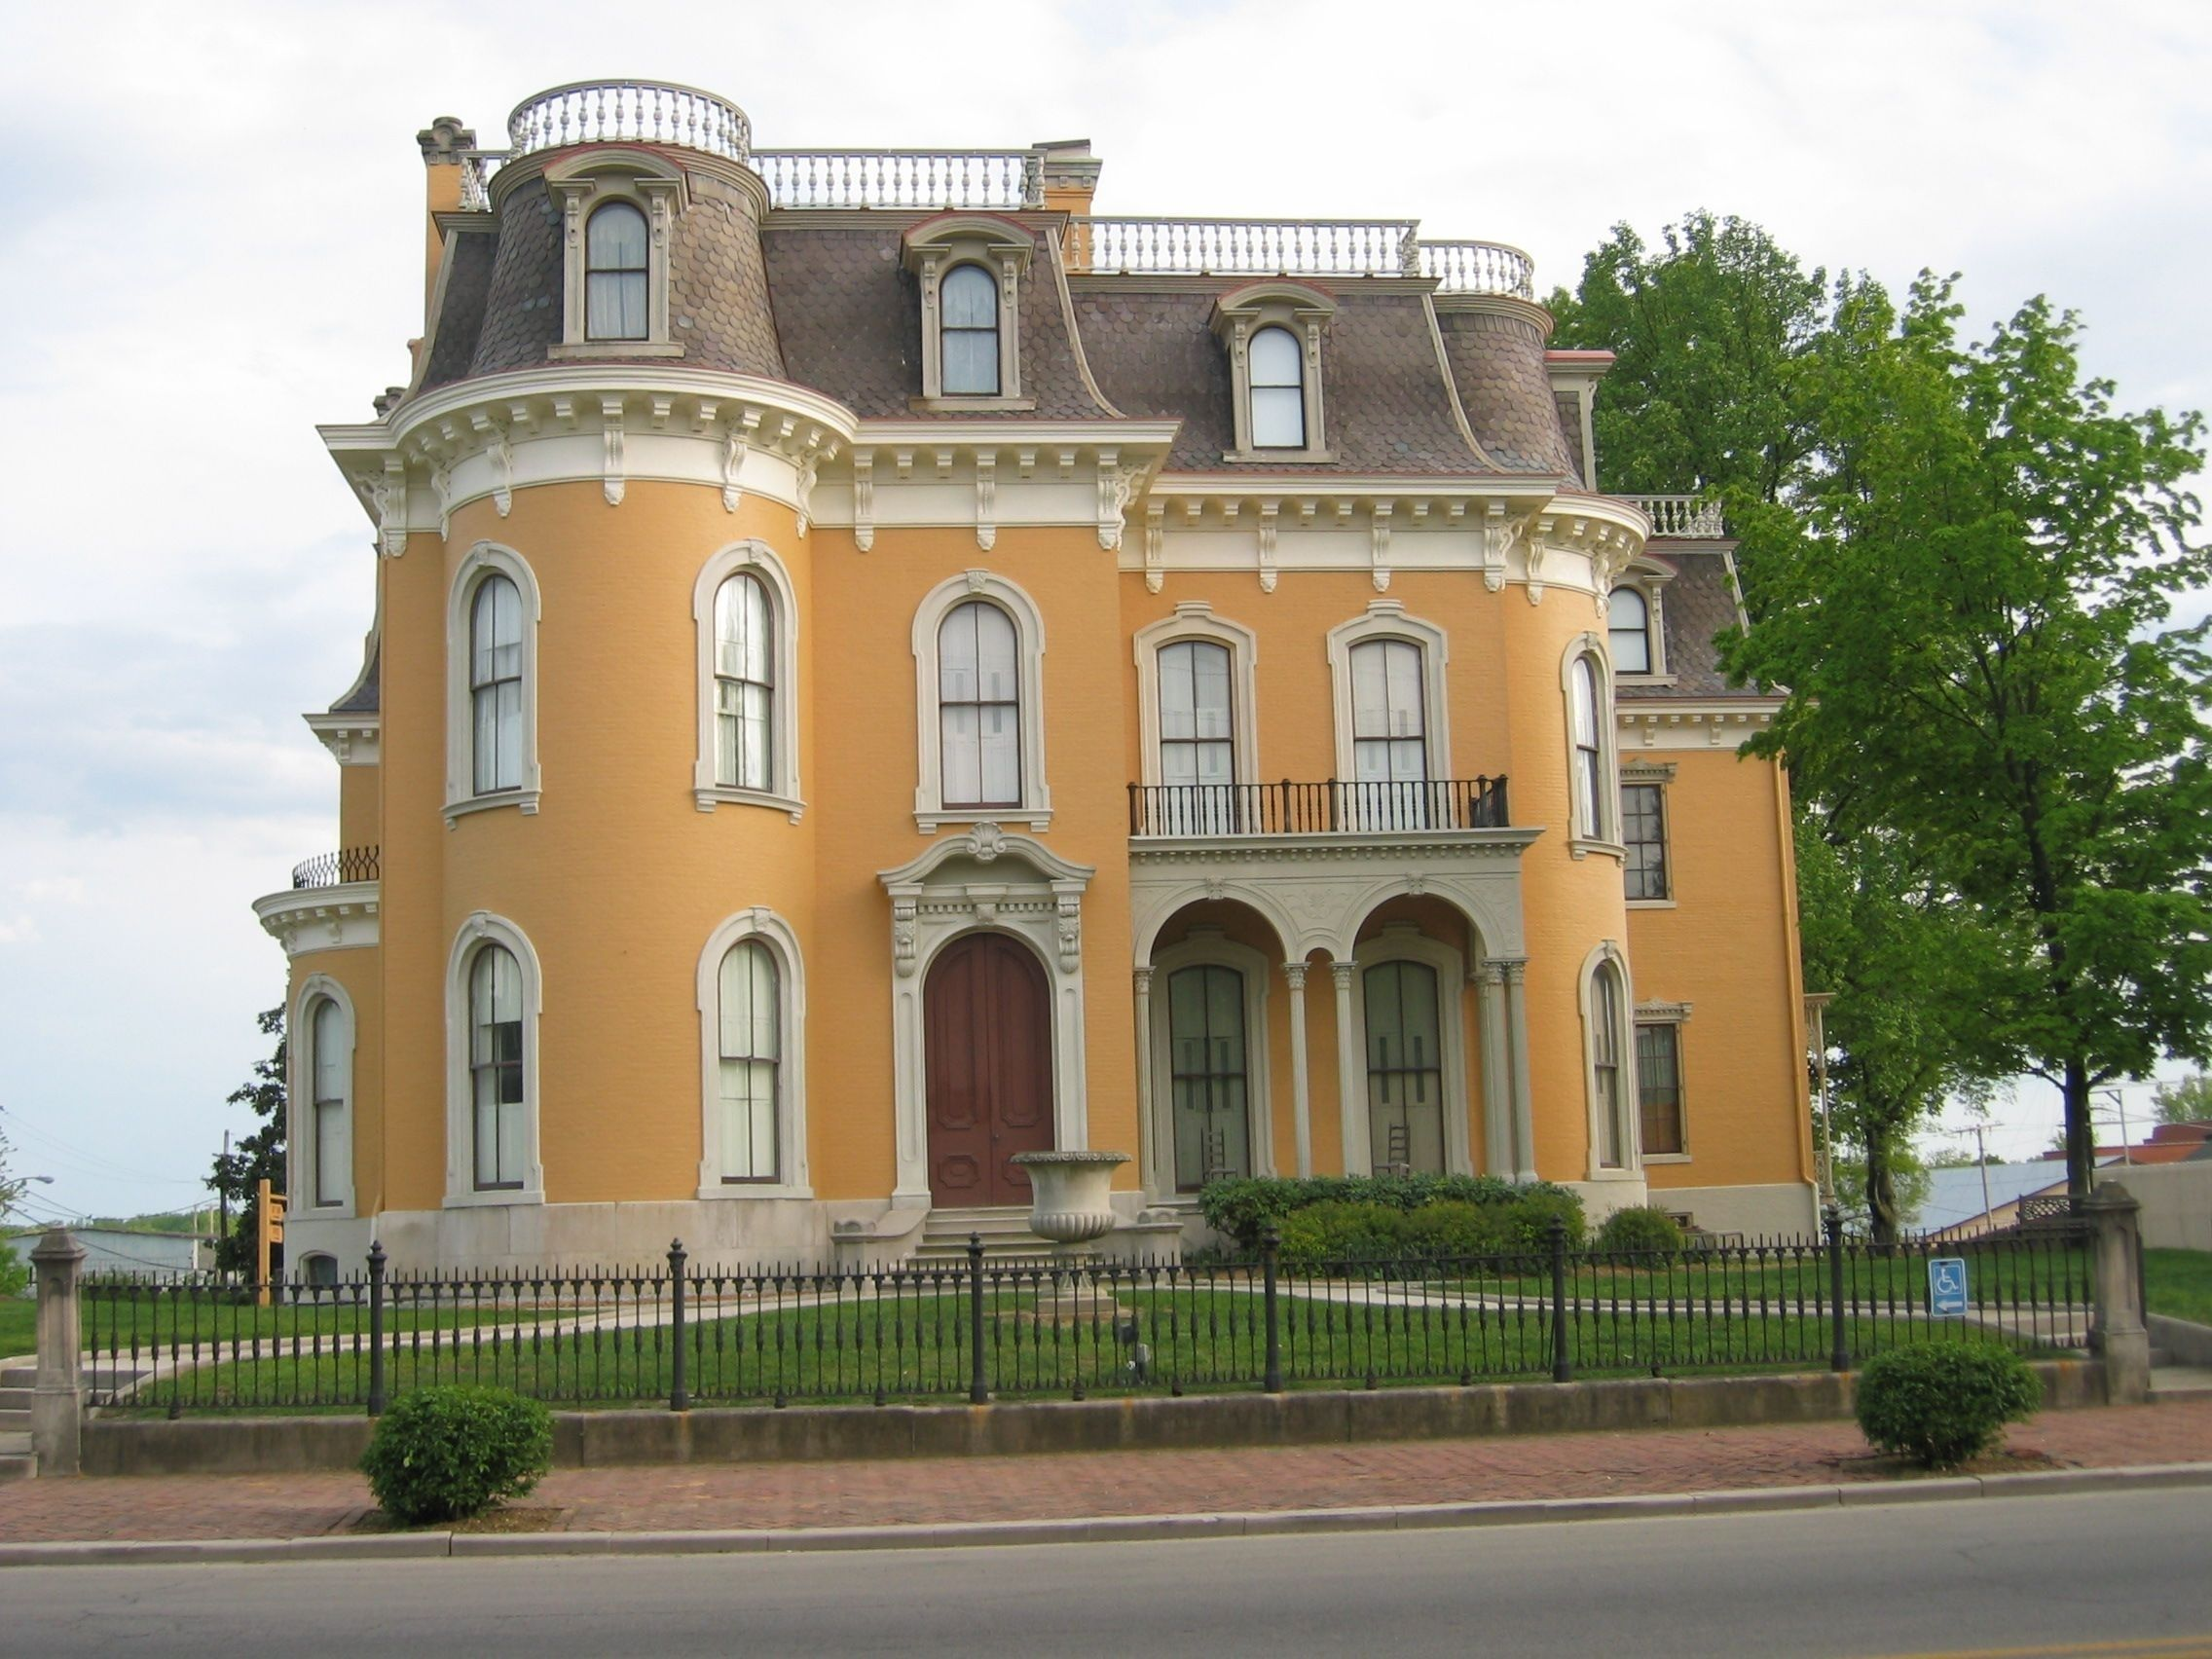 Culbertson Mansion State Historic Site as seen from the outside